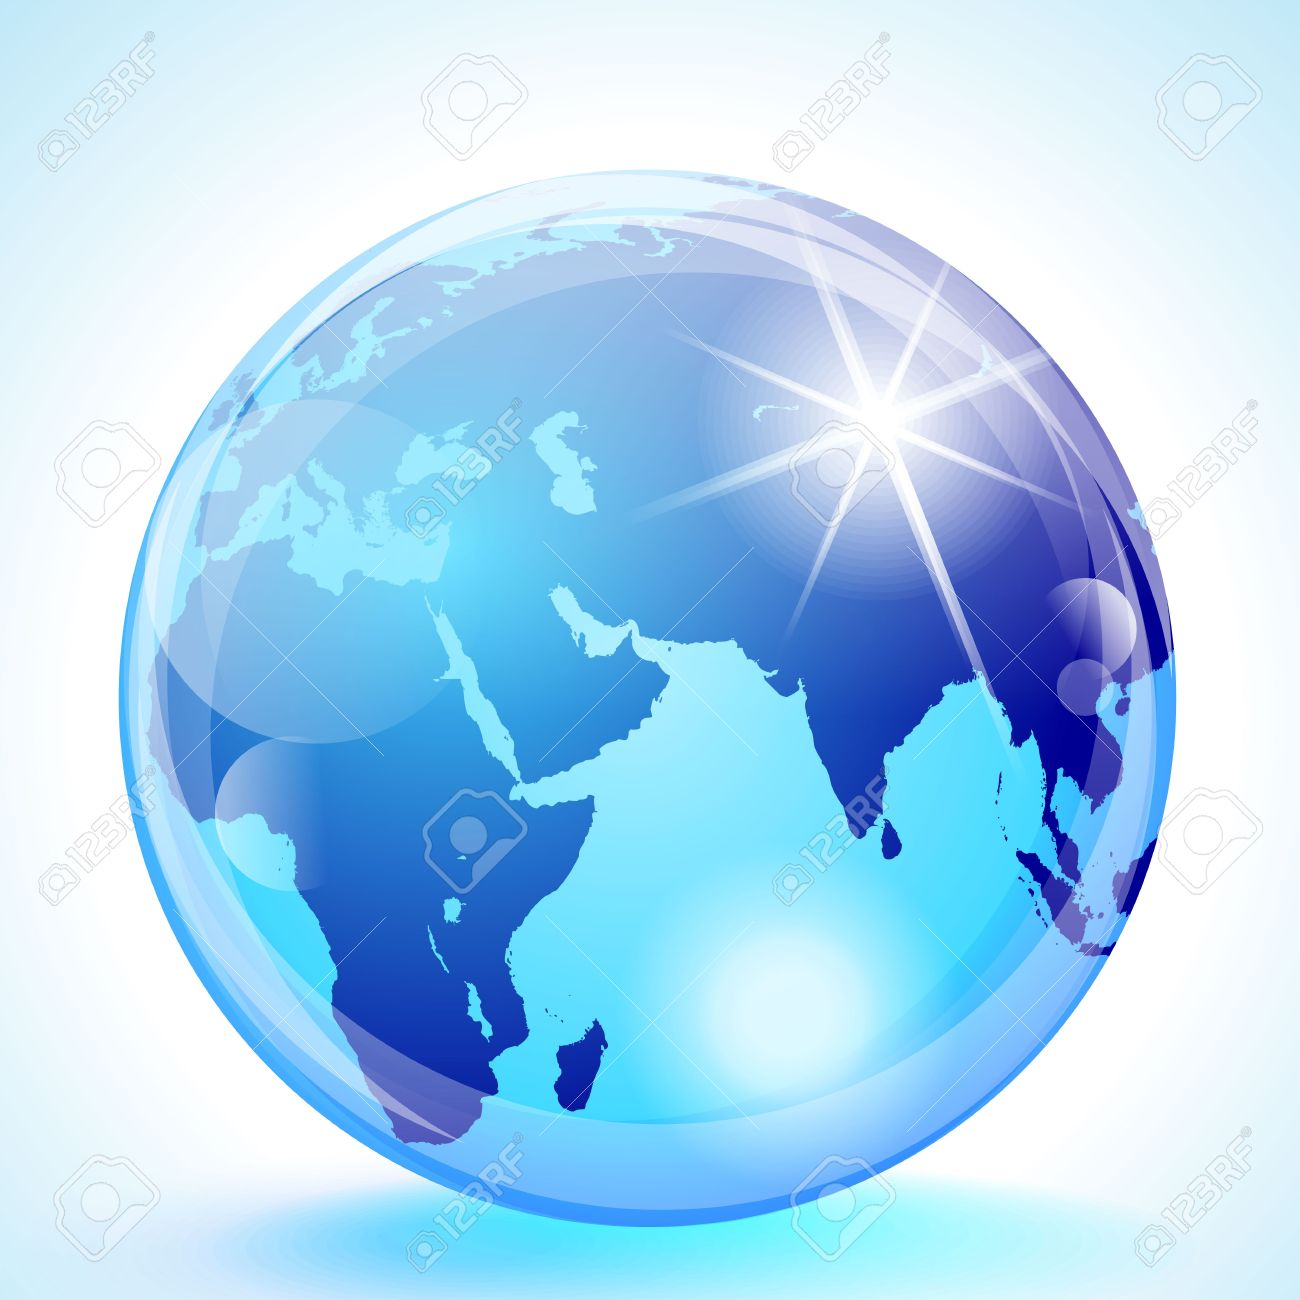 Blue marble globe showing the Europe, Africa, the Indian Ocean, the Middle East & Asia. - 13109446